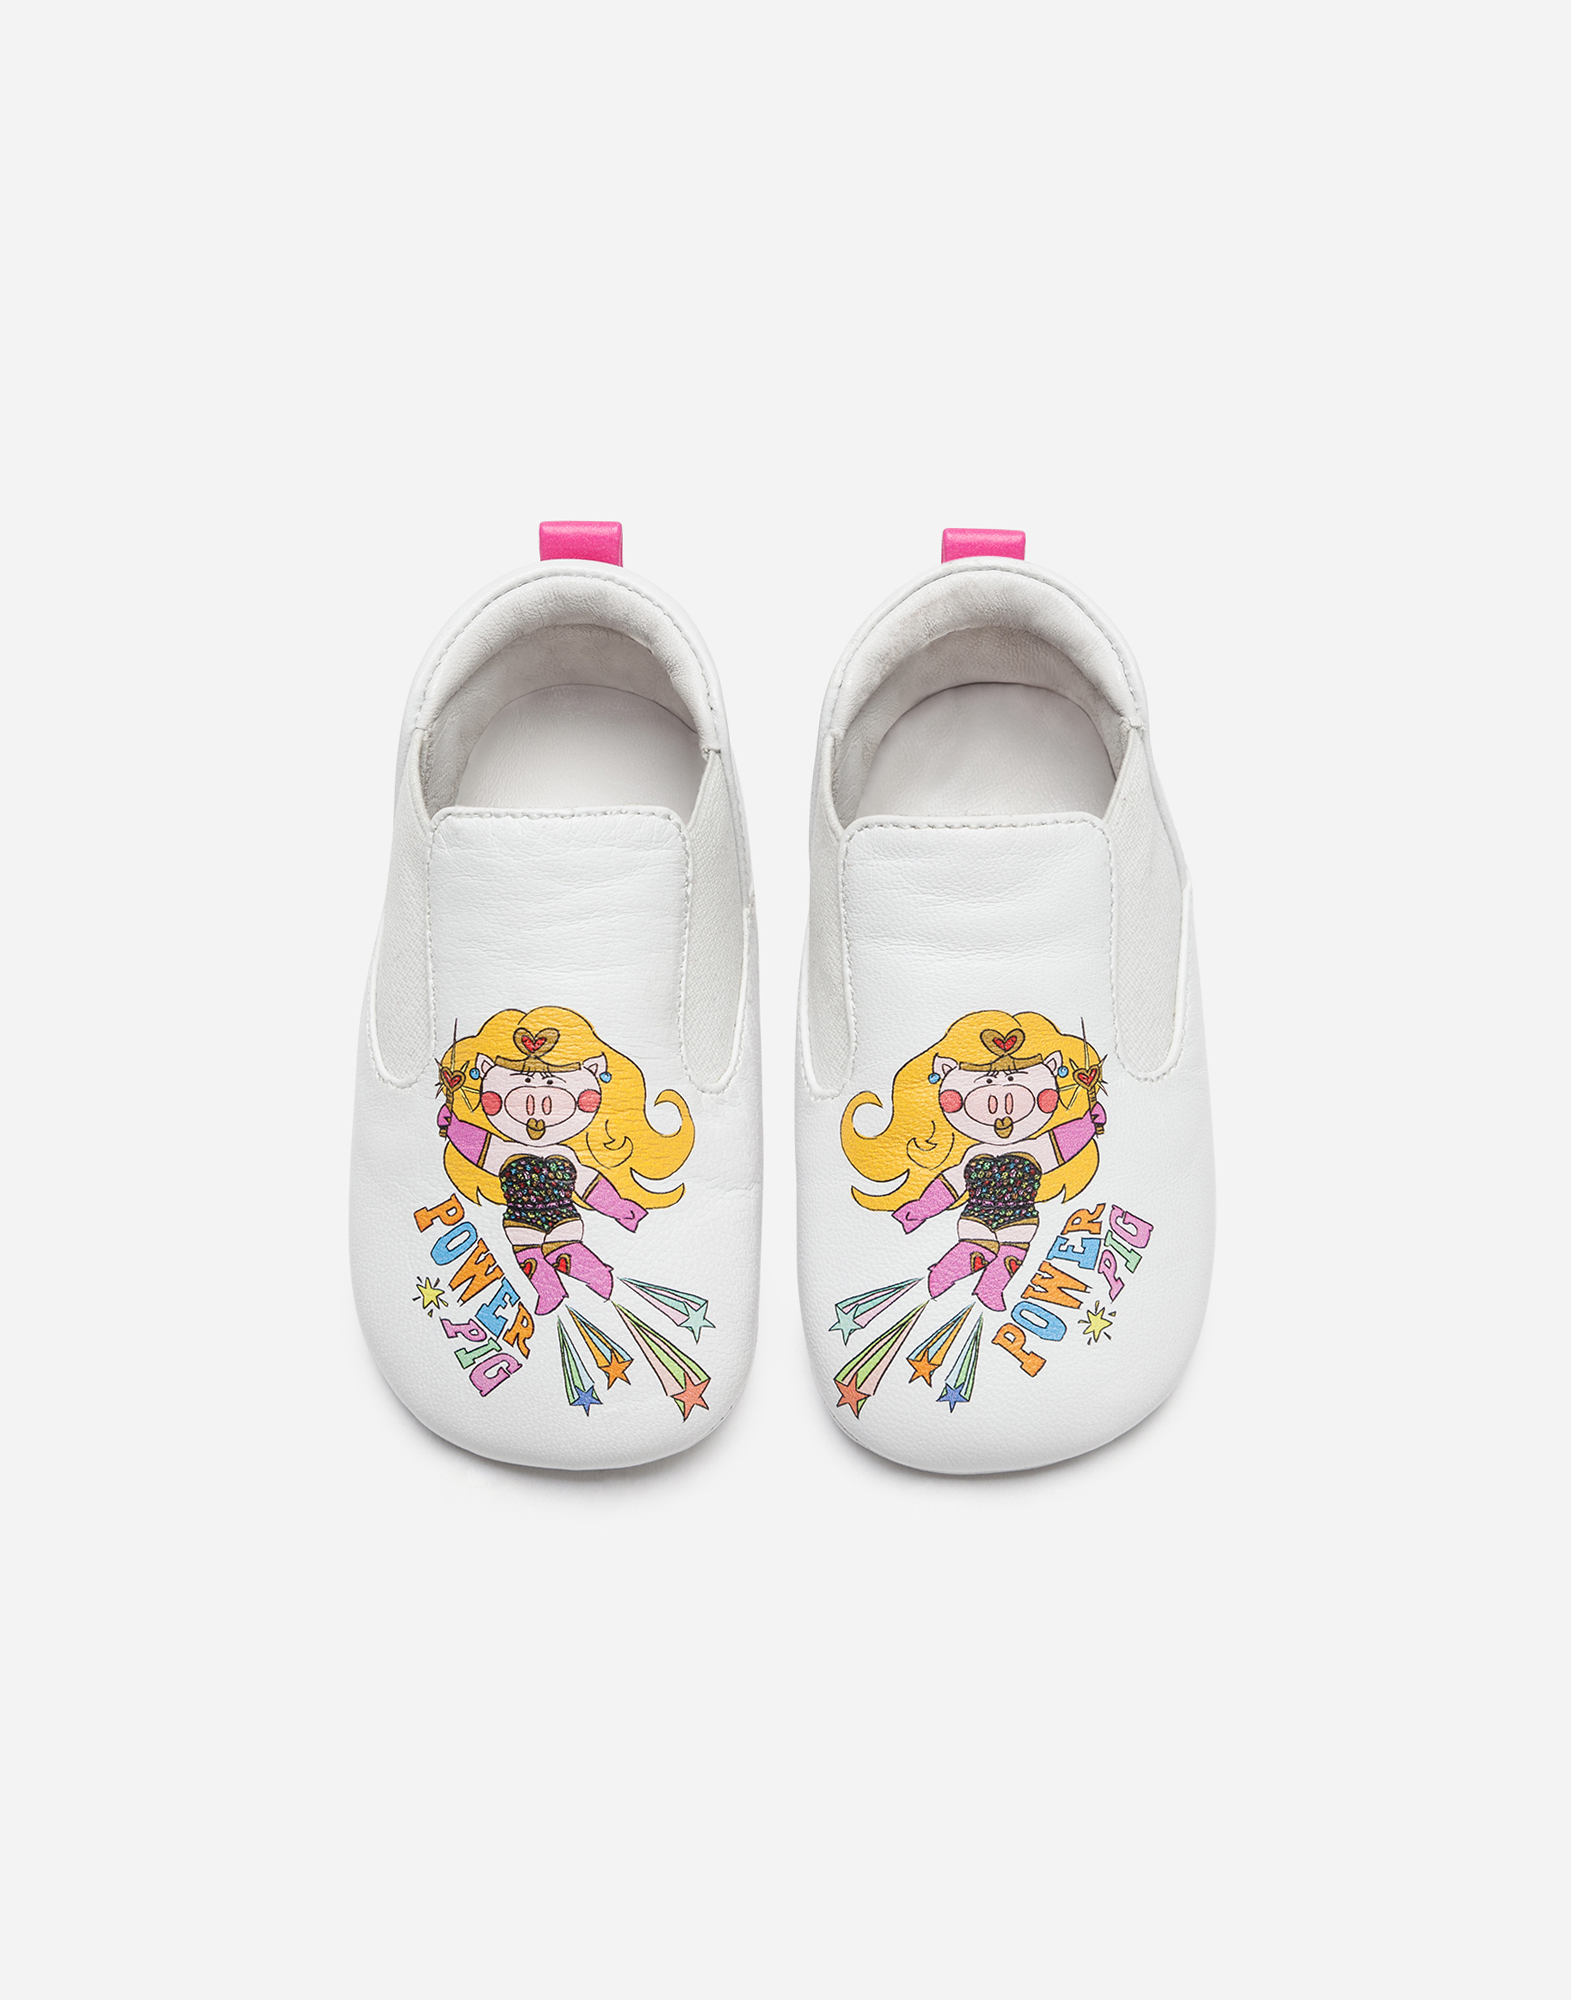 Dolce & Gabbana SLIP ON SNEAKERS WITH PRINT